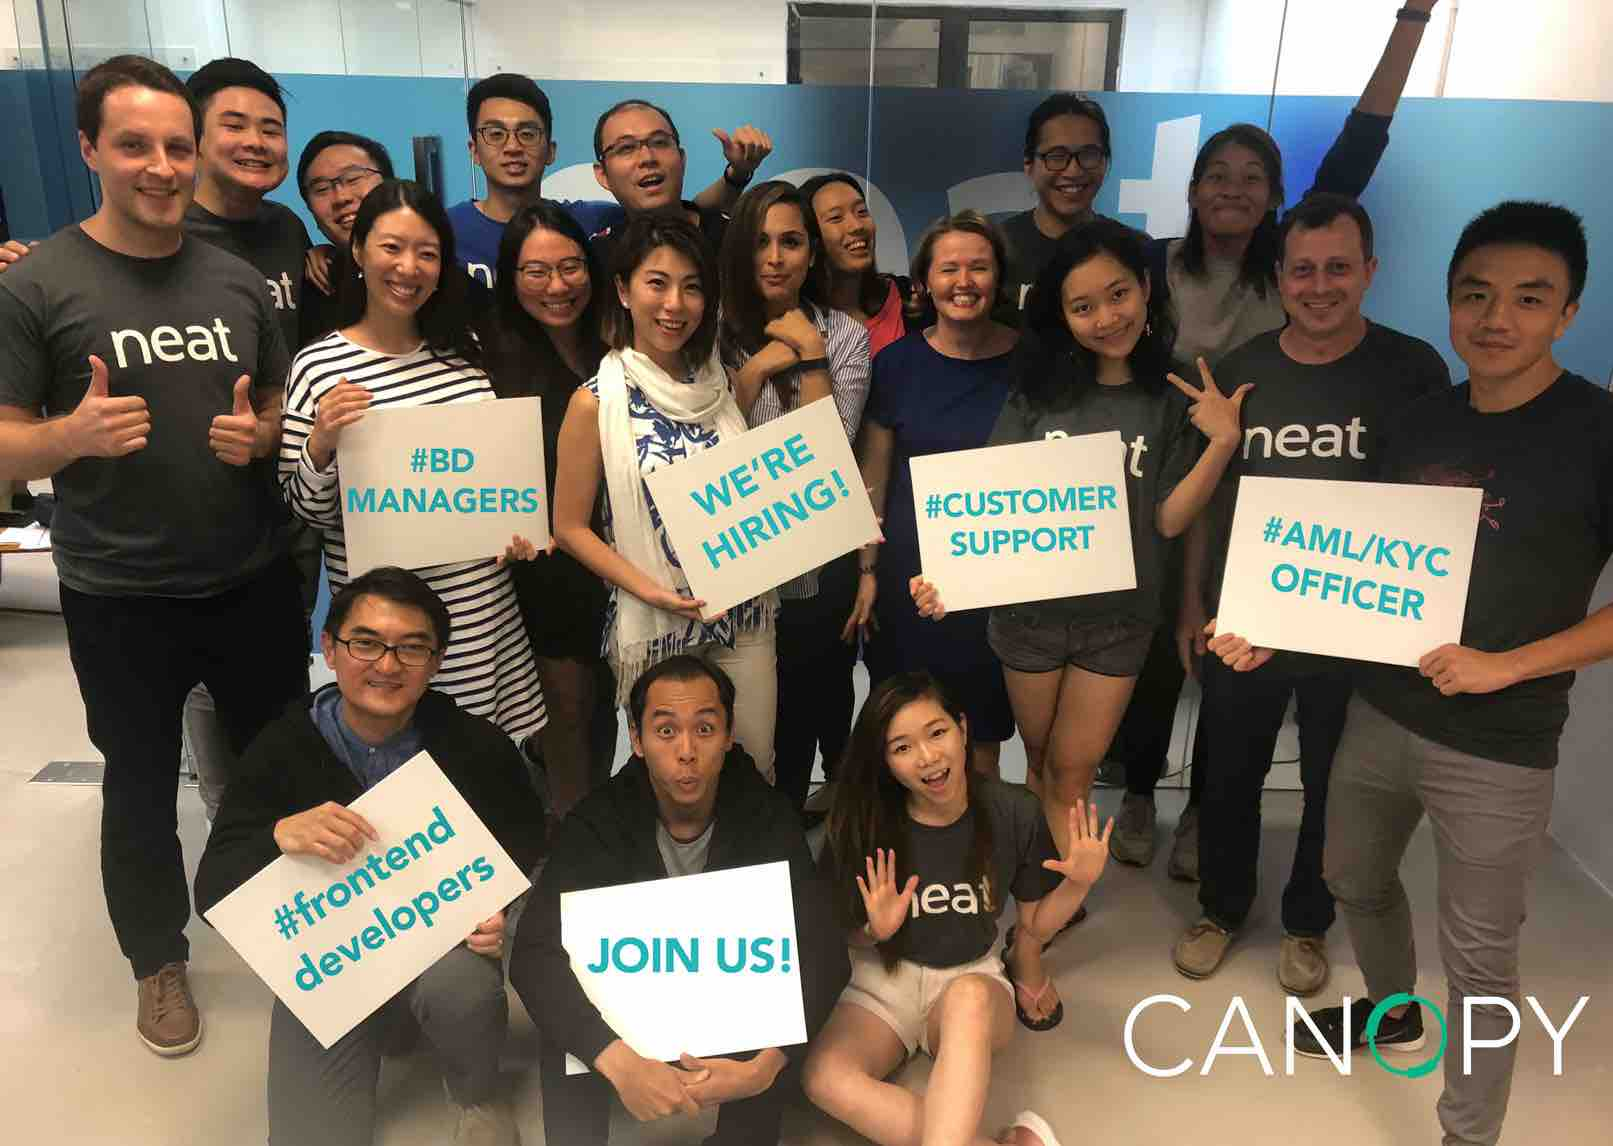 Neat (HK) - Summer Intern (Human Resources)